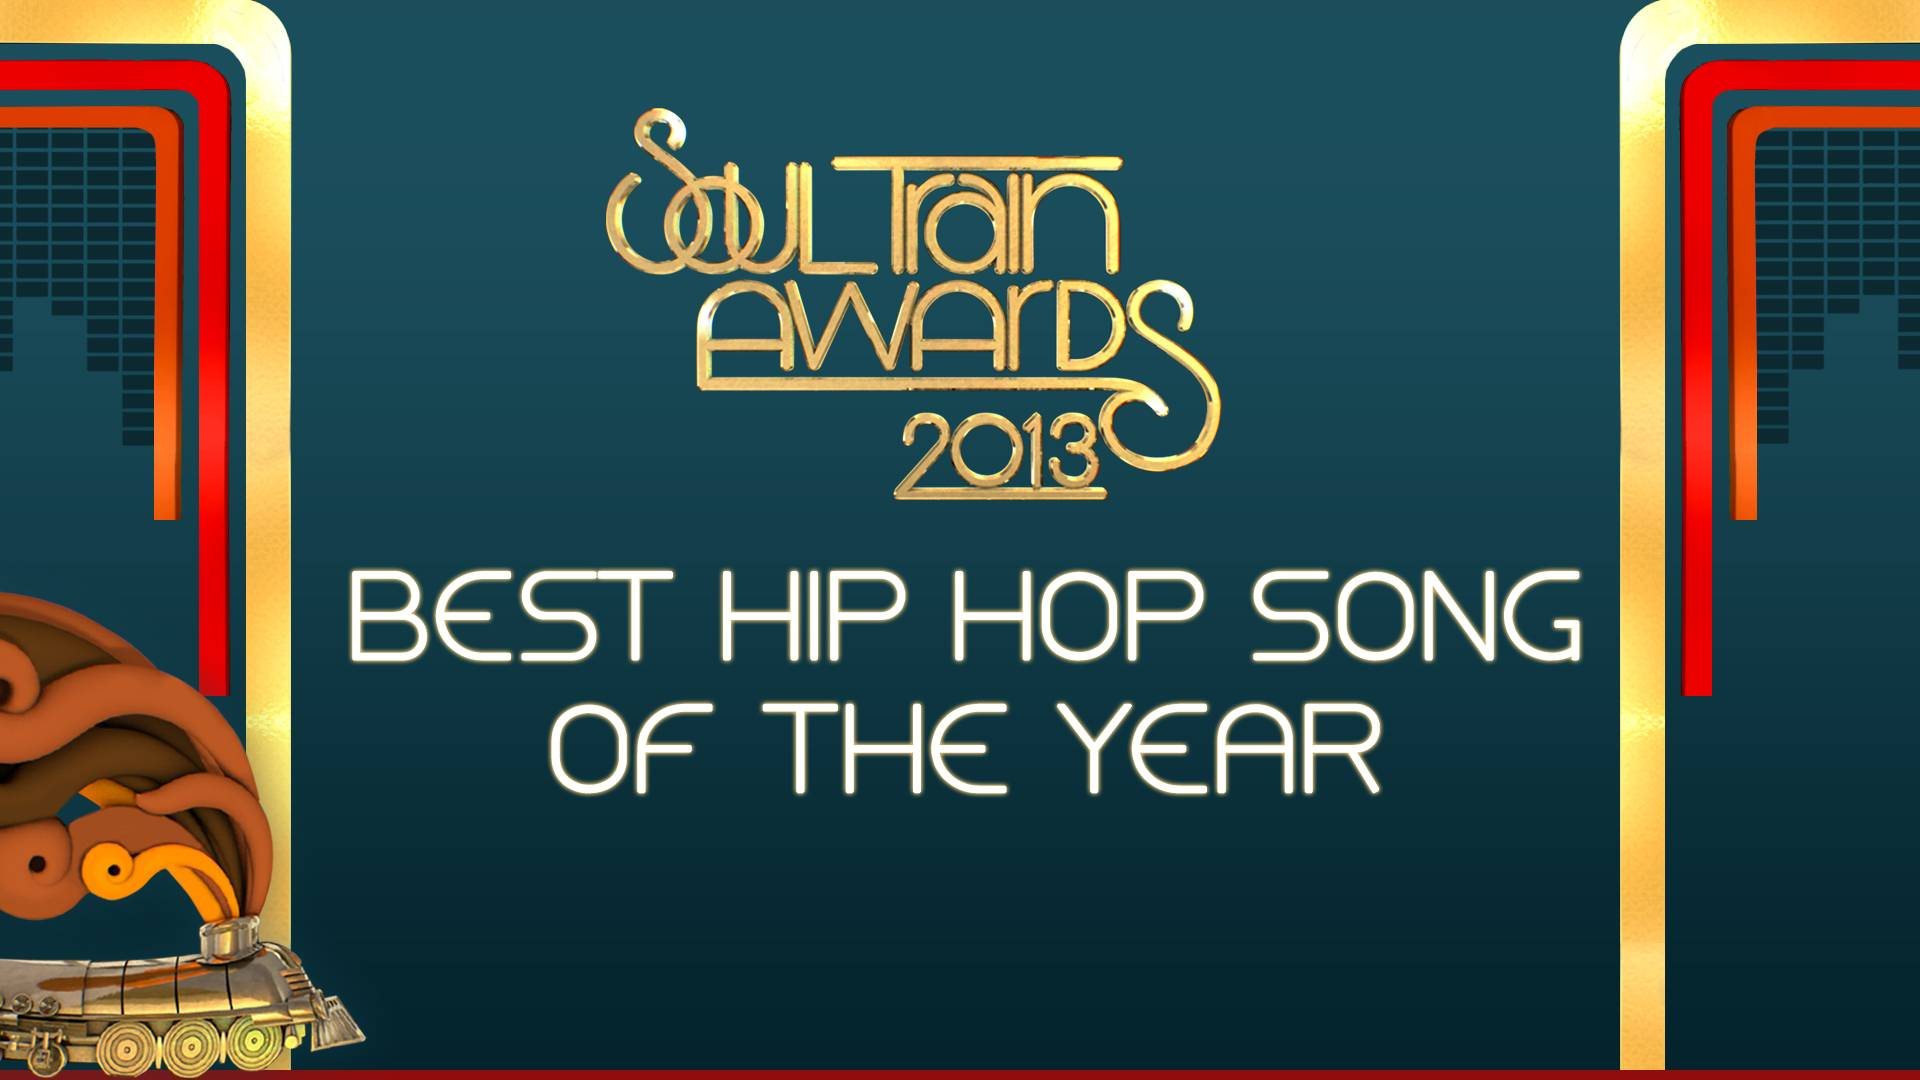 Best Hip Hop Song of The Year